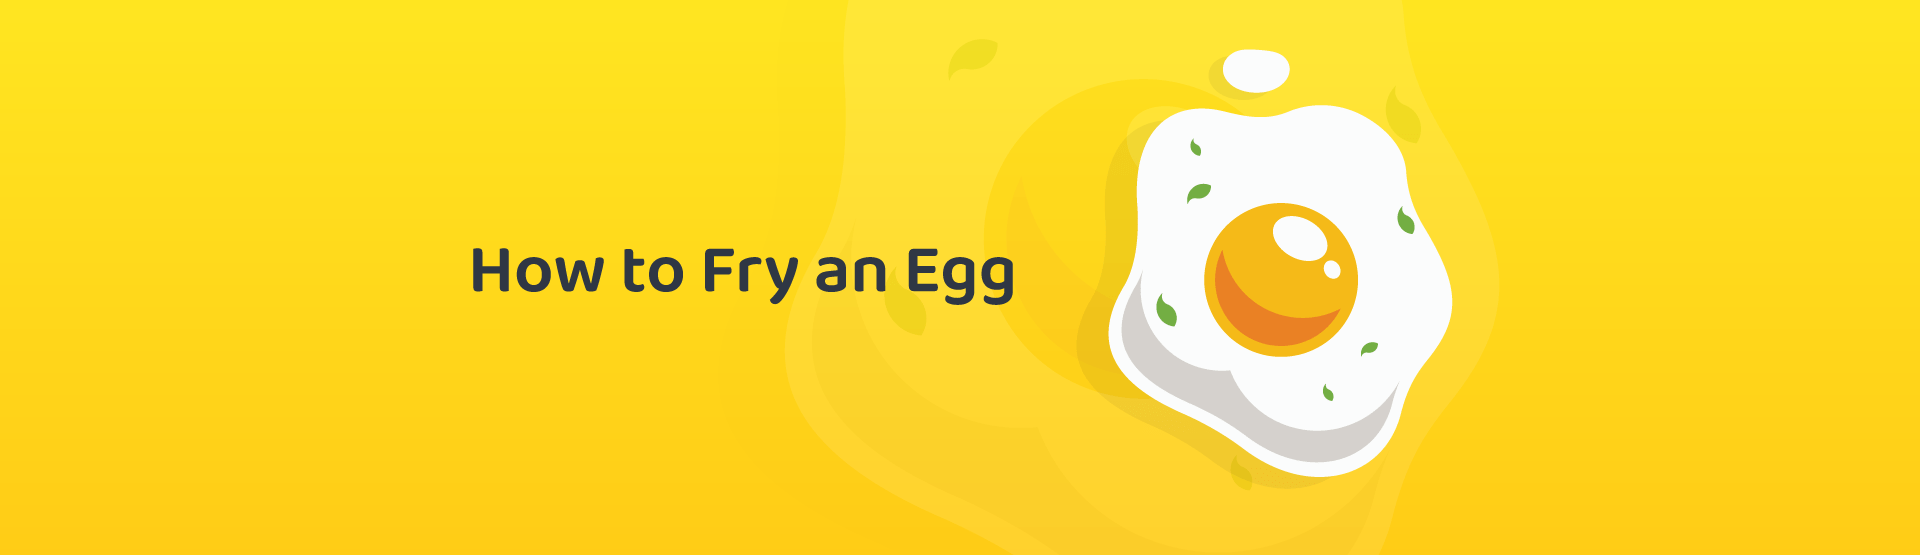 How to Fry an Egg - featured image